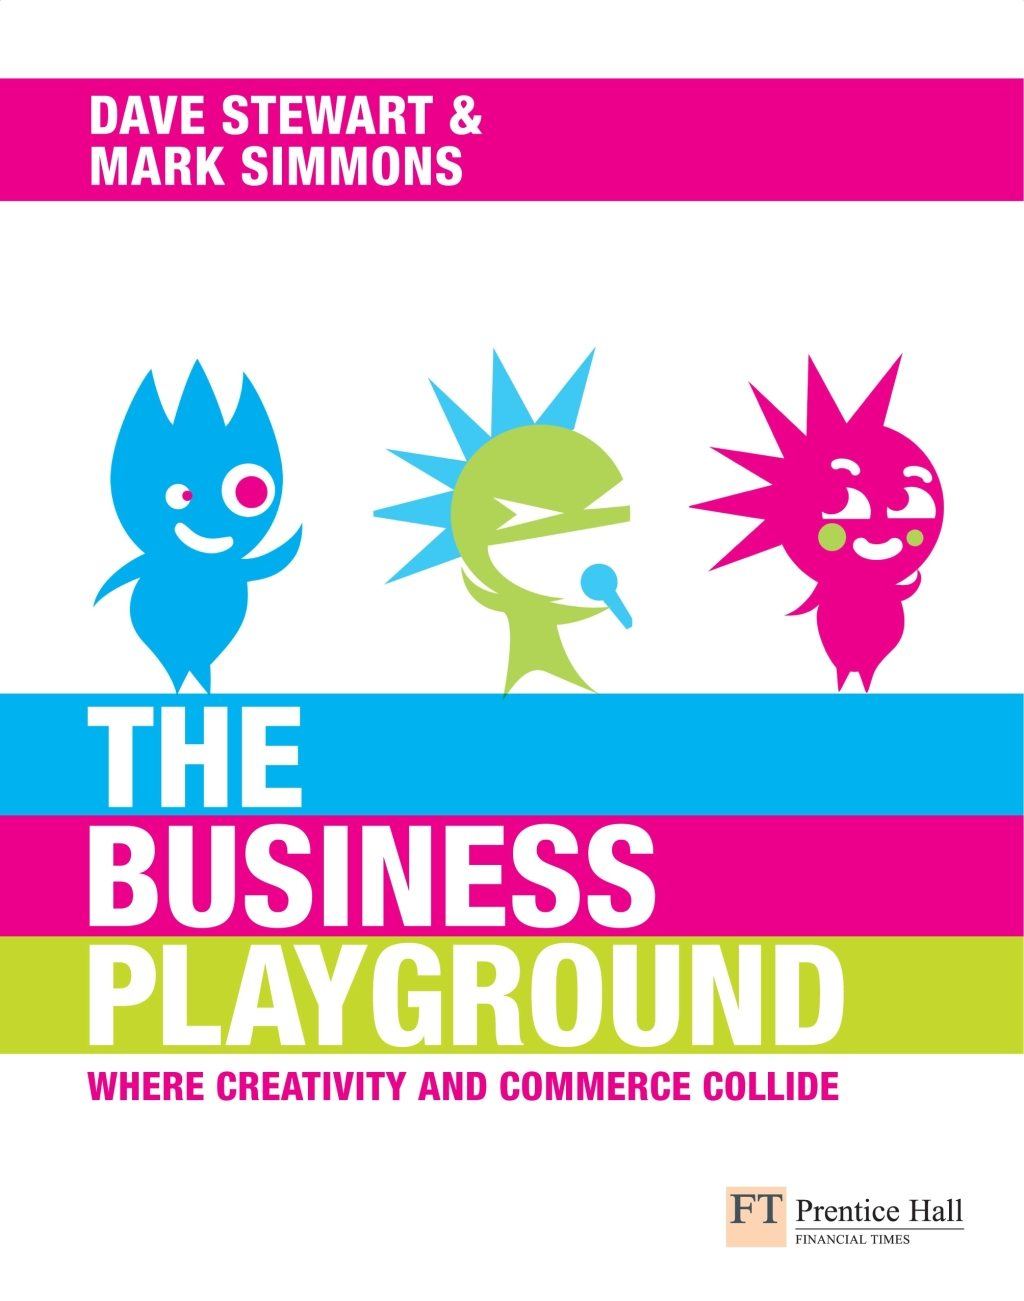 The Business Playground, Dave Stewart and Mark Simmons new book.